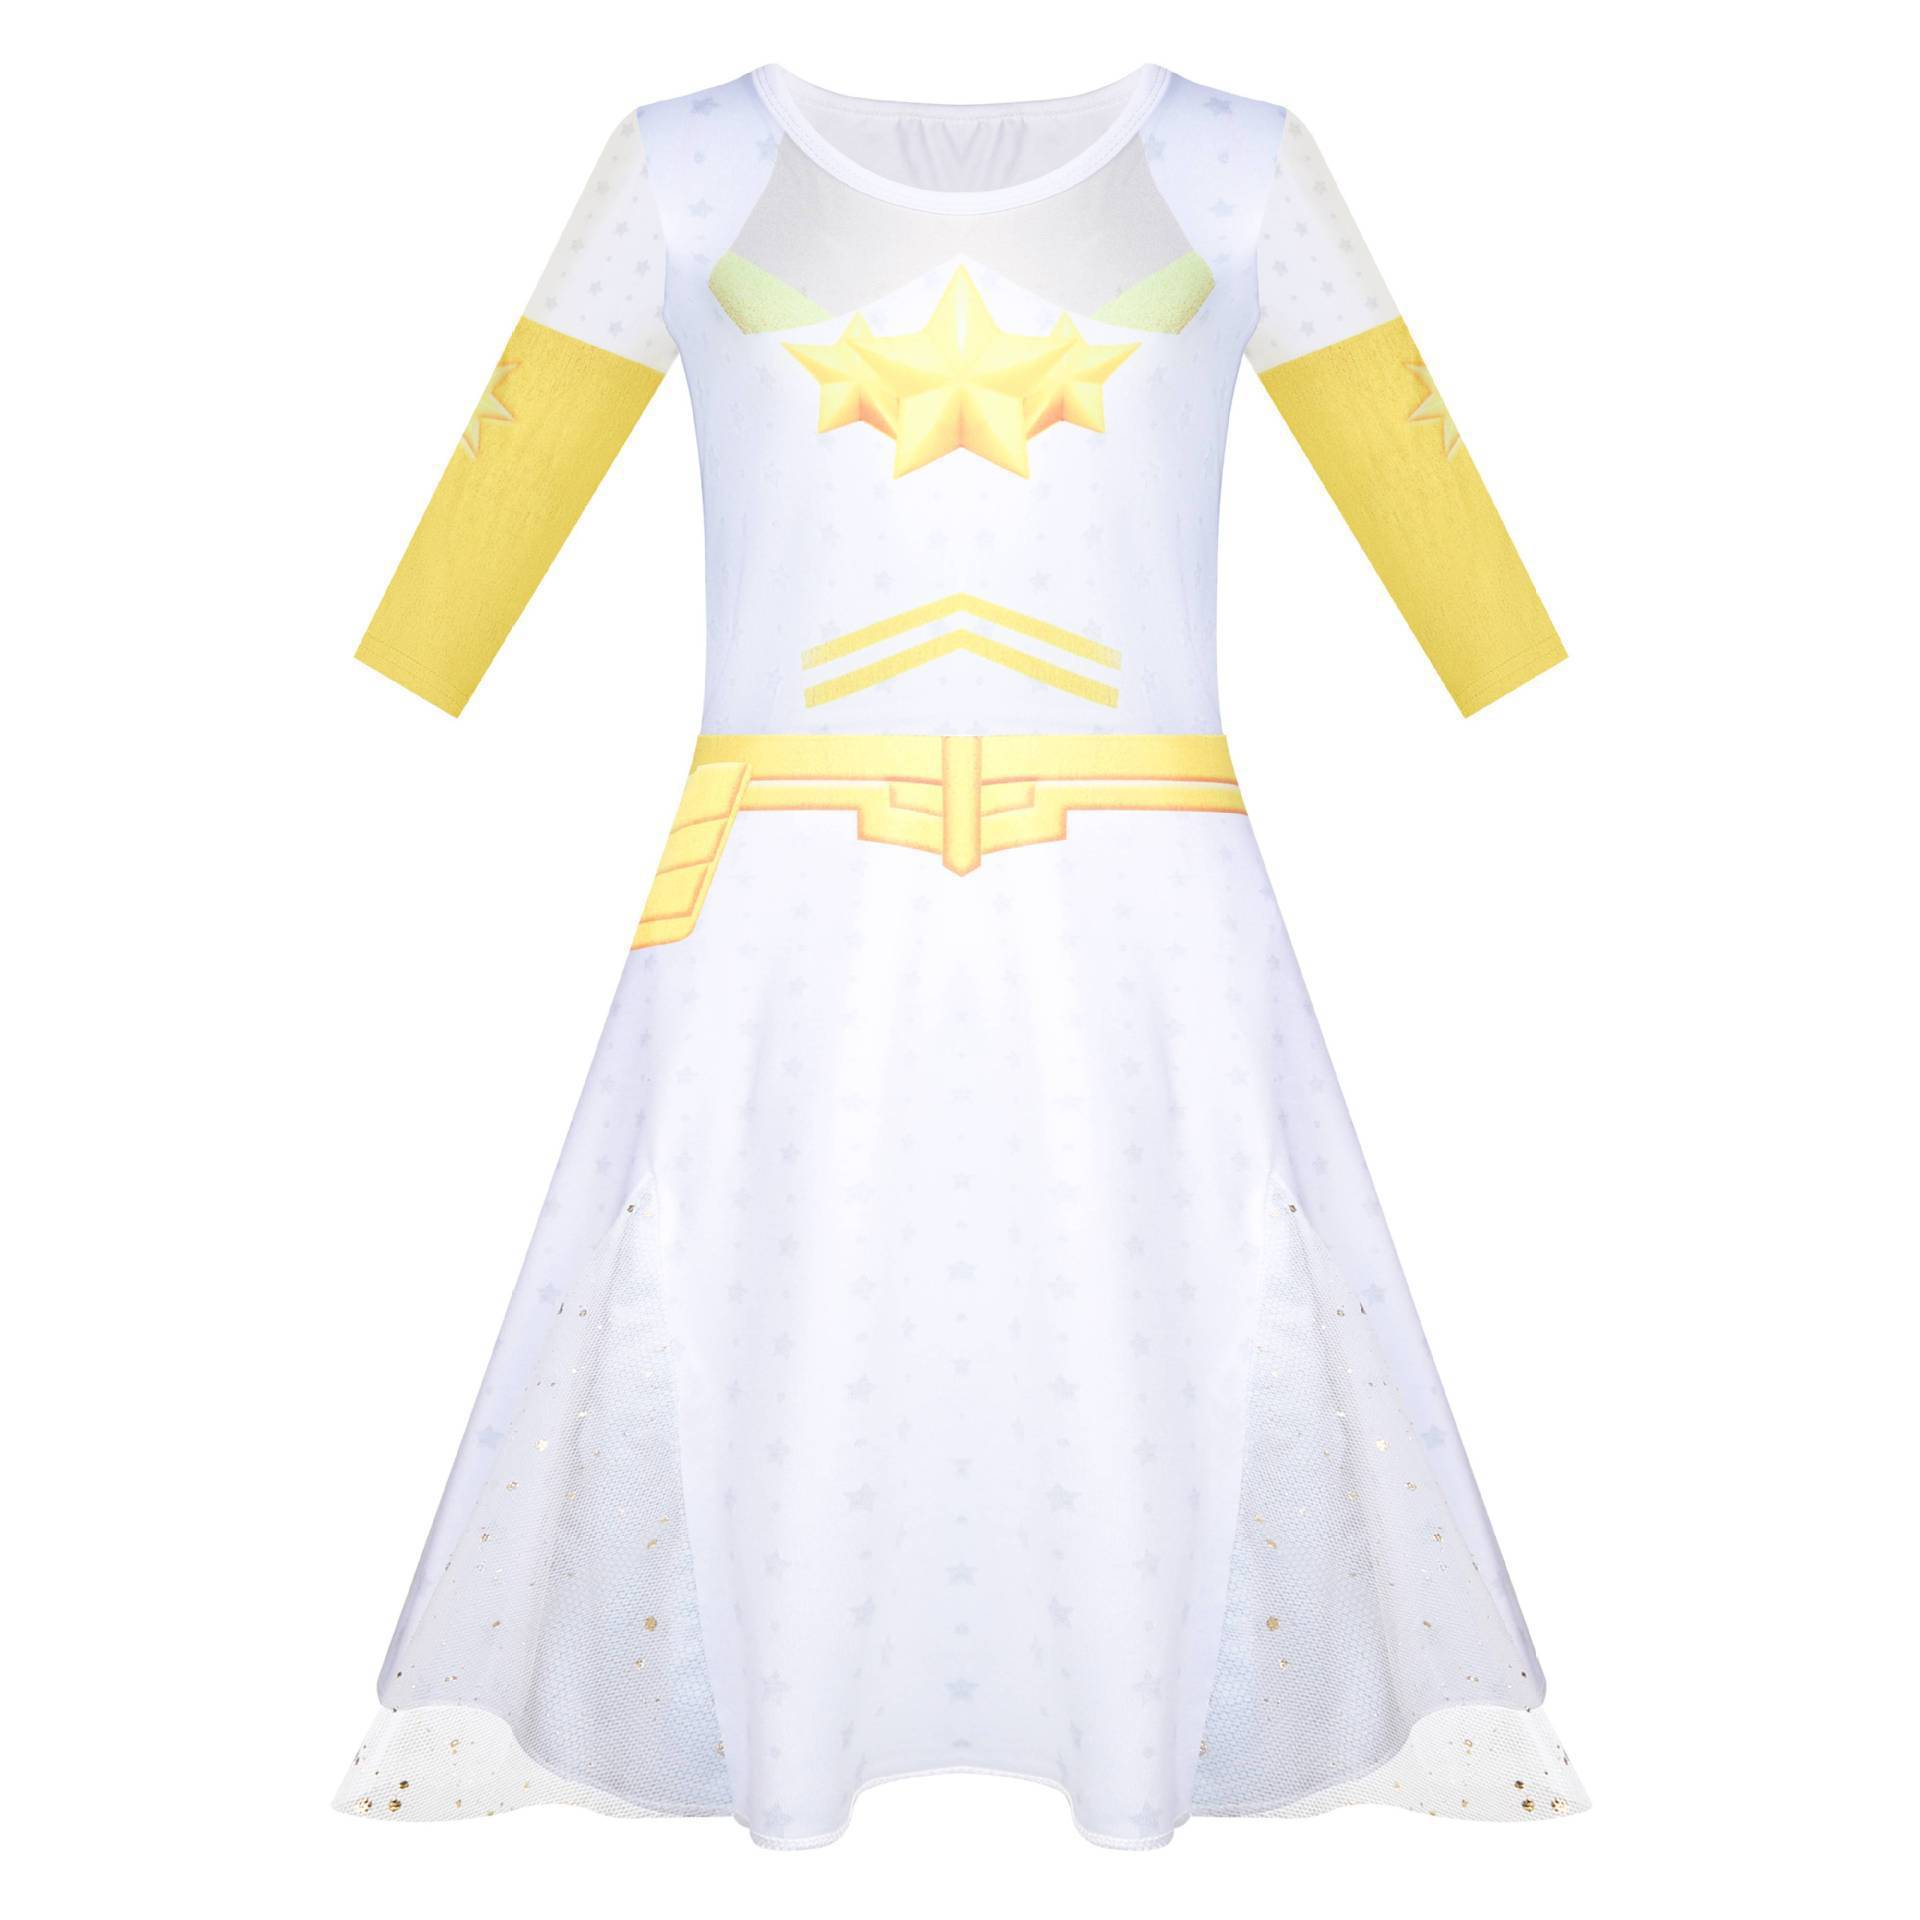 The Boys Starlight Season Dress Cosplay Costume for Kids Girl Halloween Party